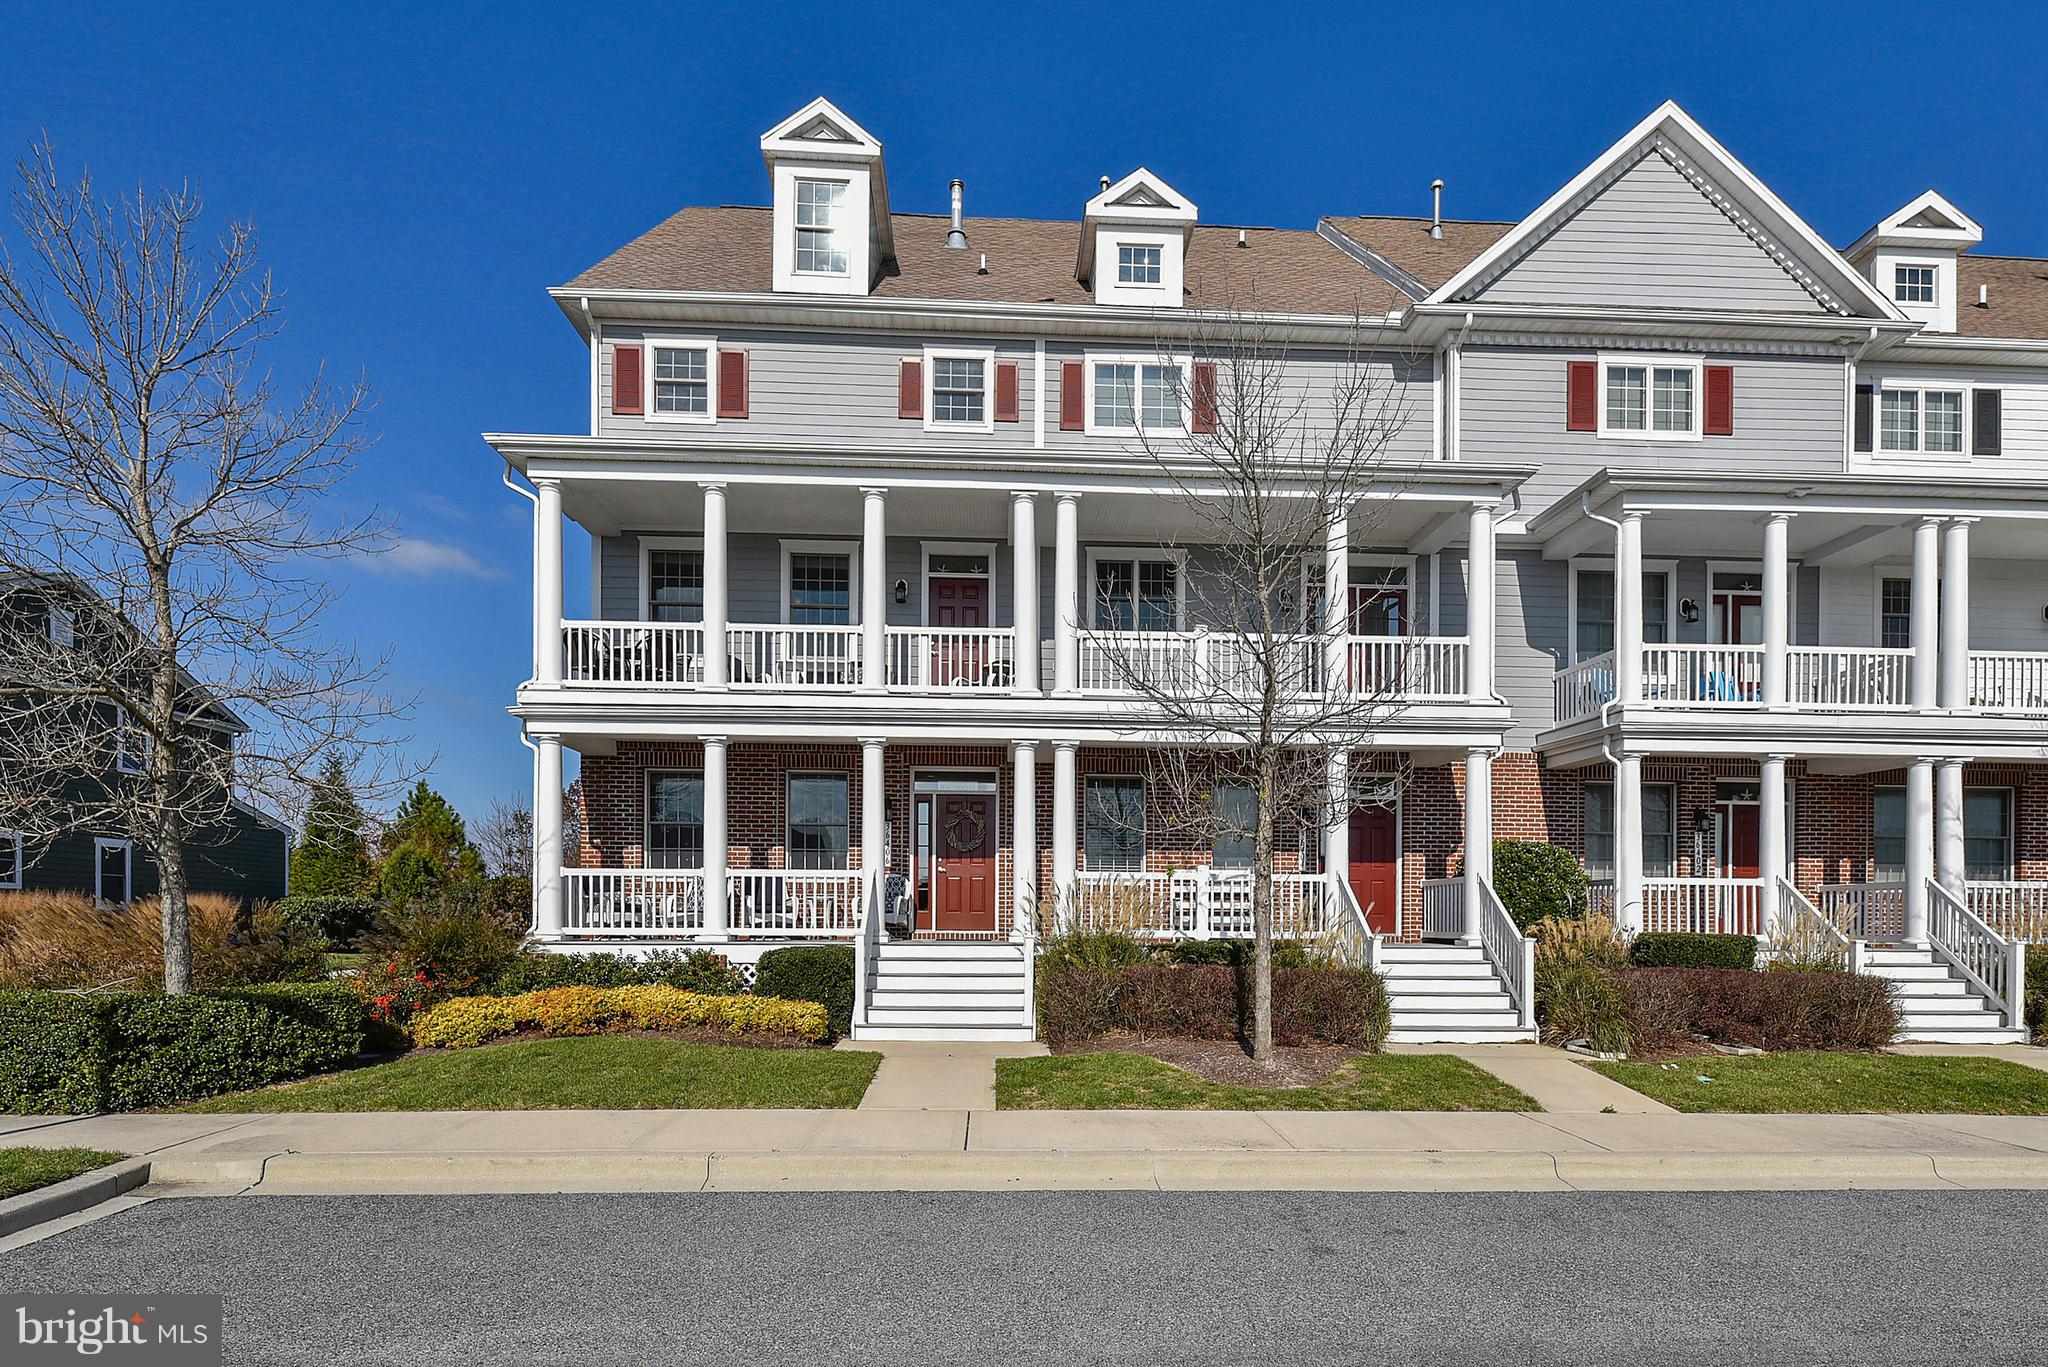 Fabulous 4 bedroom, 3.5 bath end unit townhome in desirable location just steps from the Sunridge Re